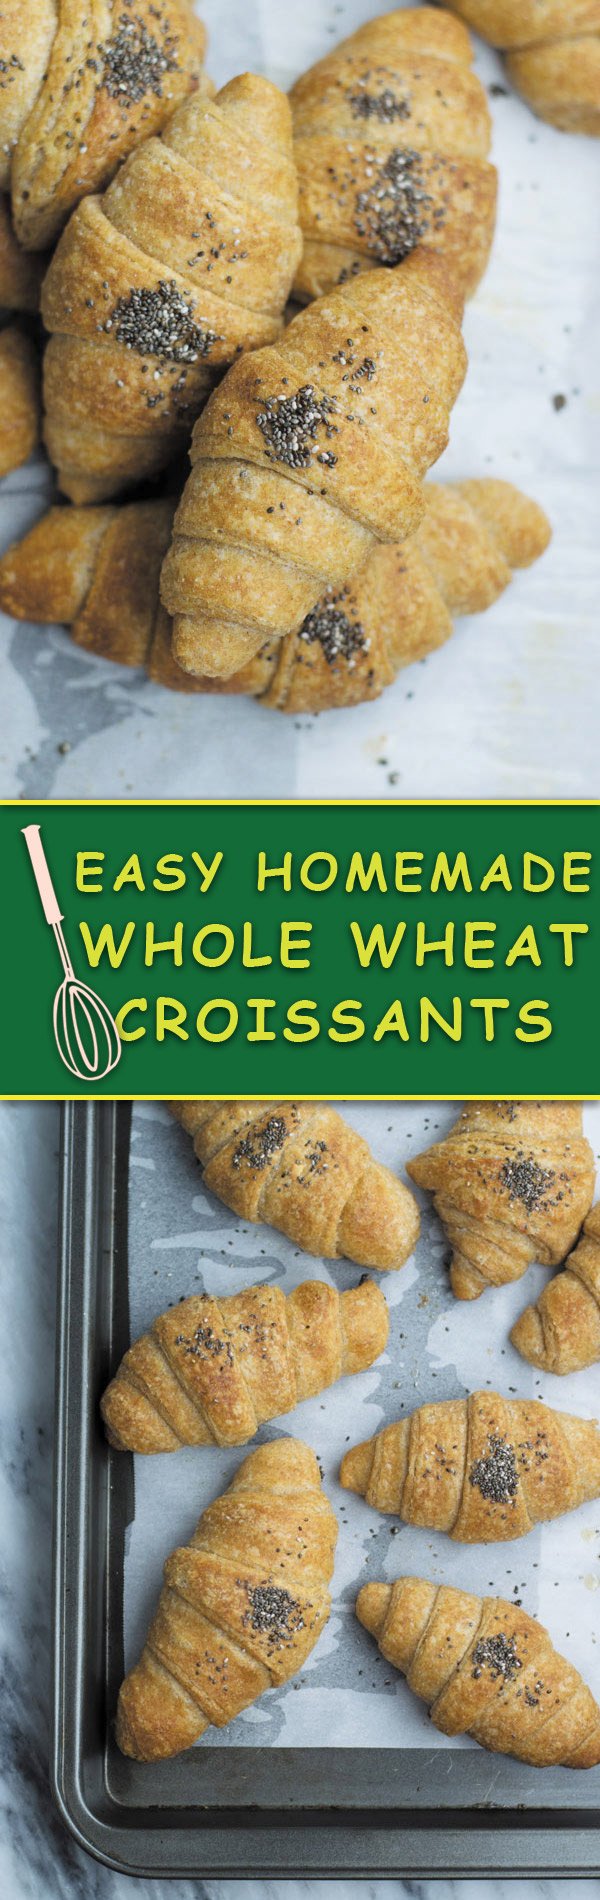 Easy Homemade Whole Wheat Croissants - a little healthier verion of regular croissants. These CROISSANTS are buttery, melts in mouth and so good that you will NEVER go bake to buying again!